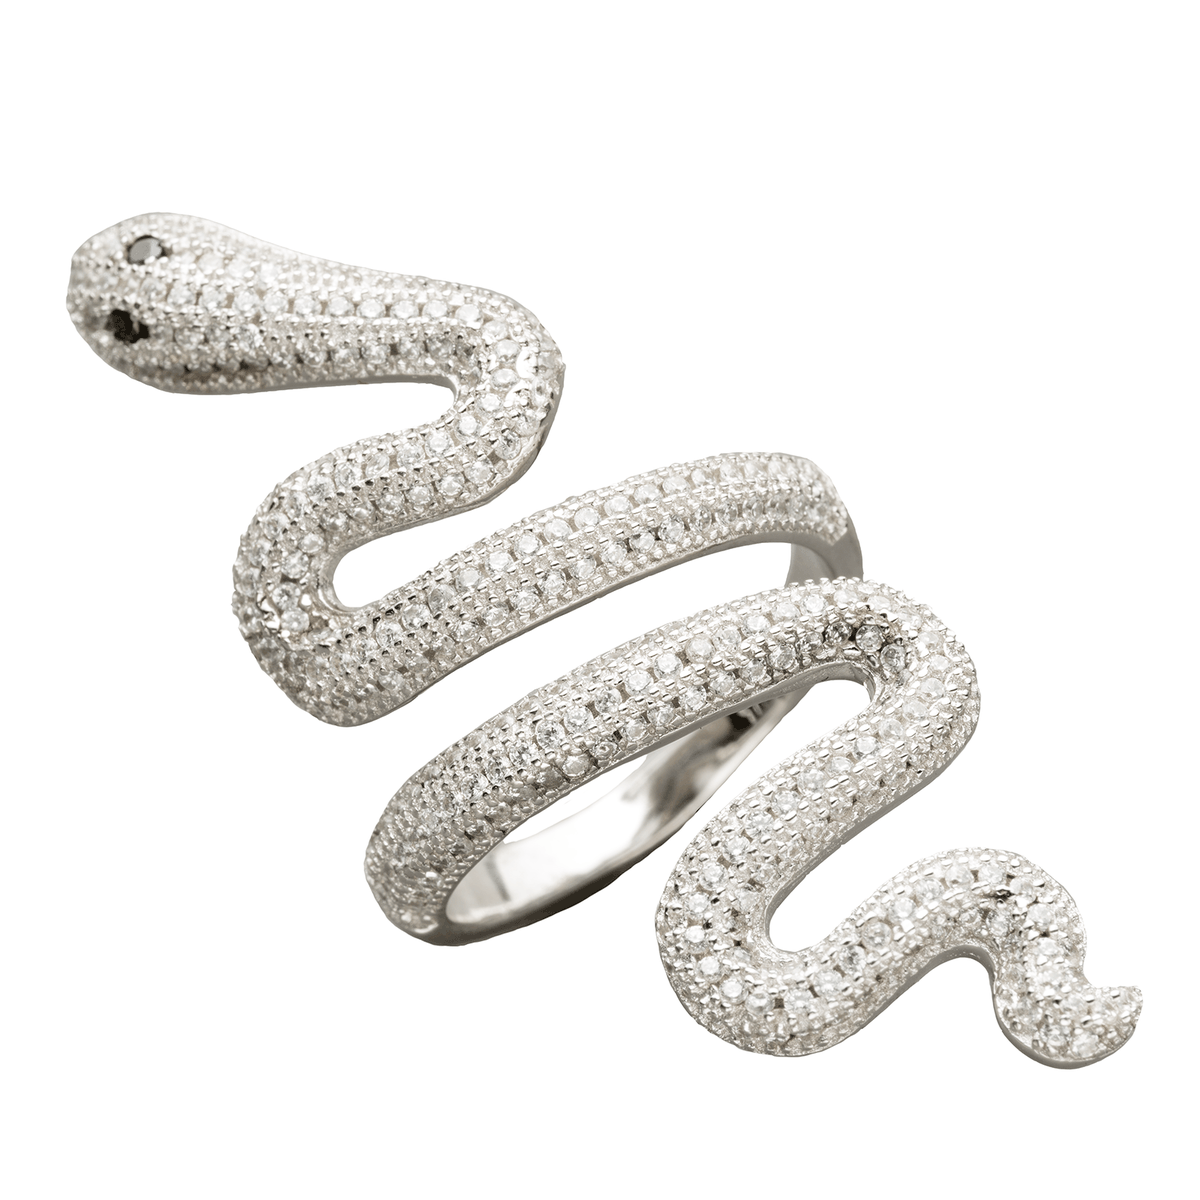 Taylor Swift Silver Snake Ring, $60